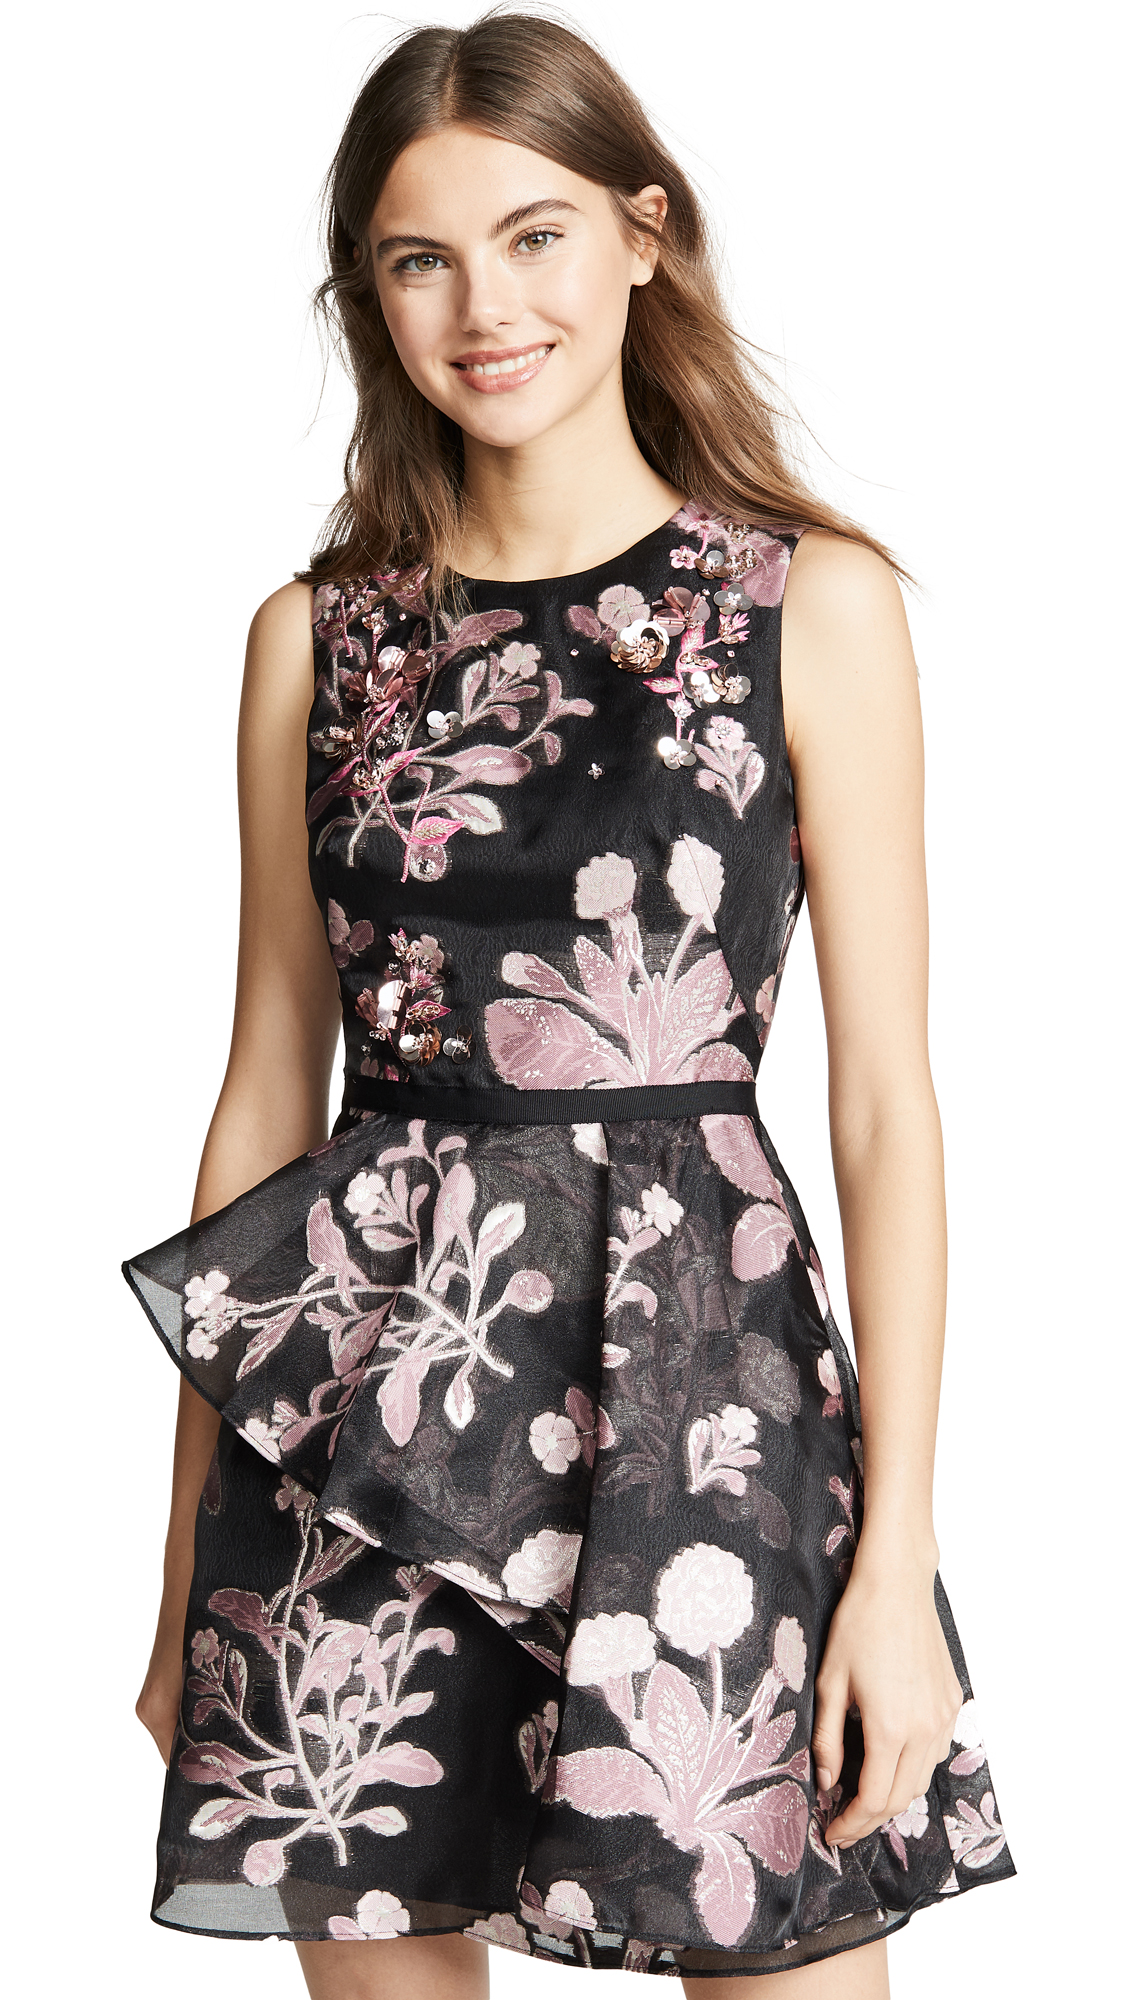 cf7010f9f9e Marchesa Notte Metallic Floral-Embroidered Sleeveless Cocktail Dress W   Back Cutout In Black